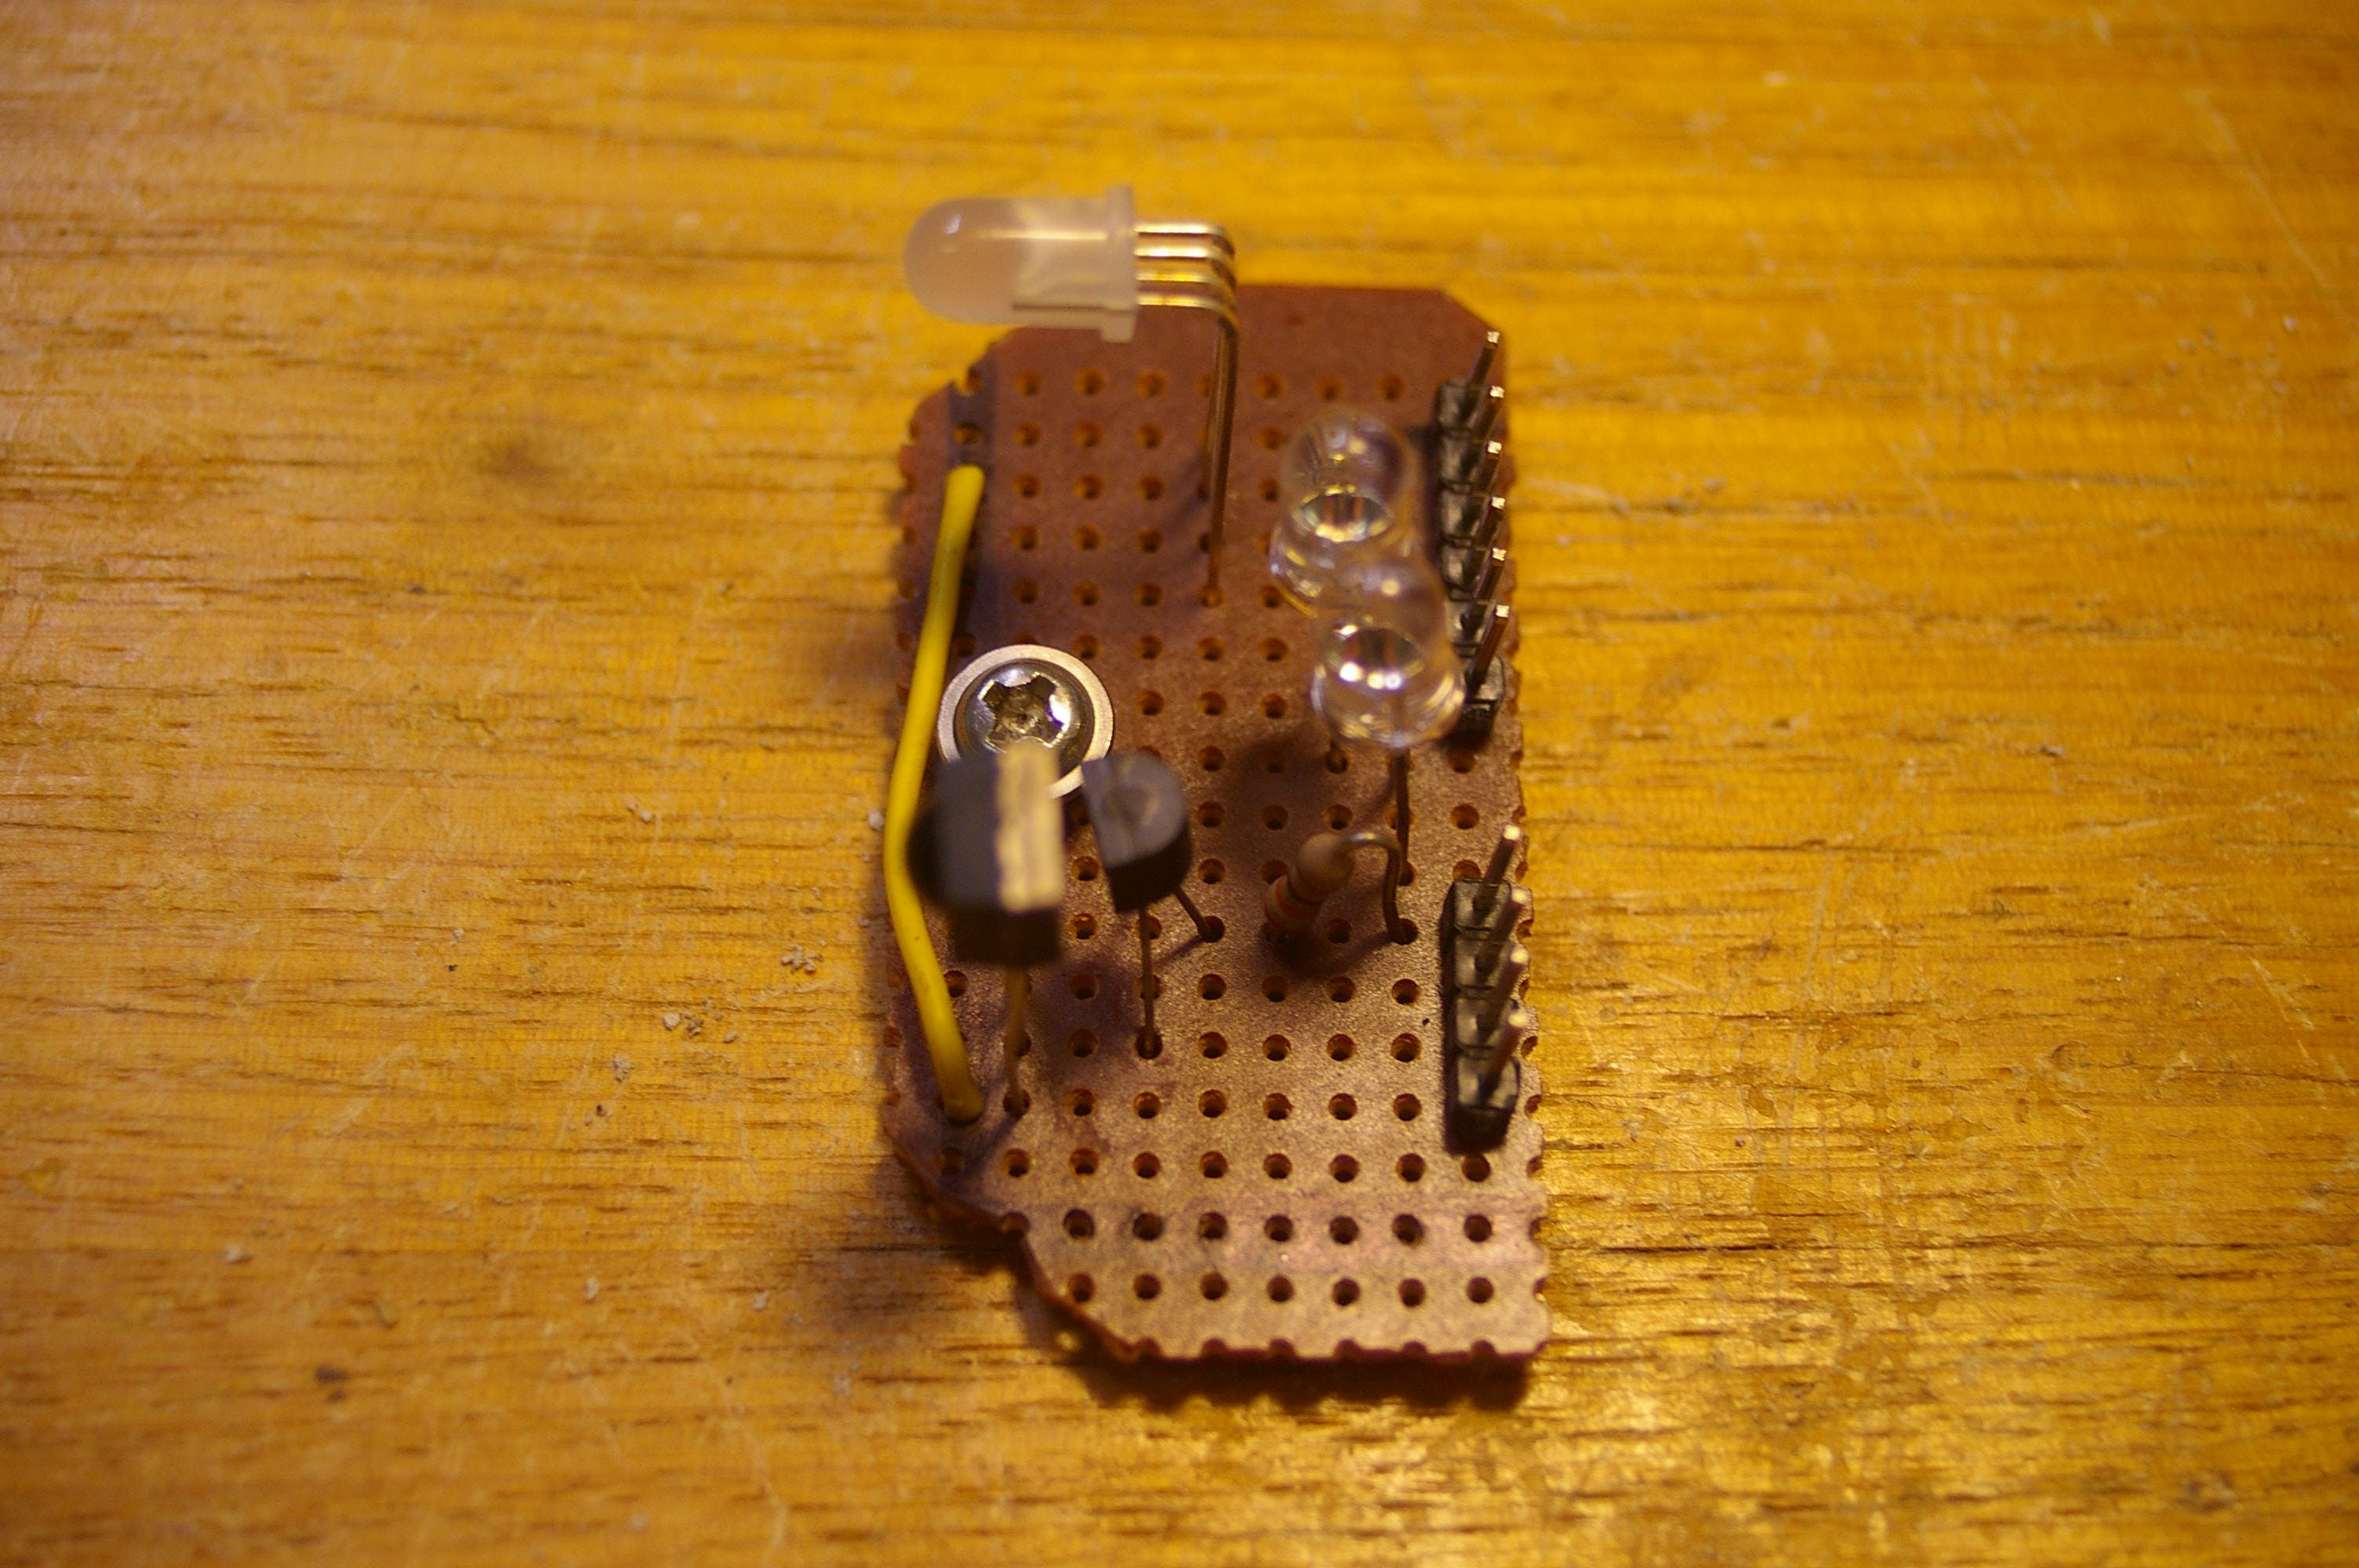 The IR transceiver assembly and status LED